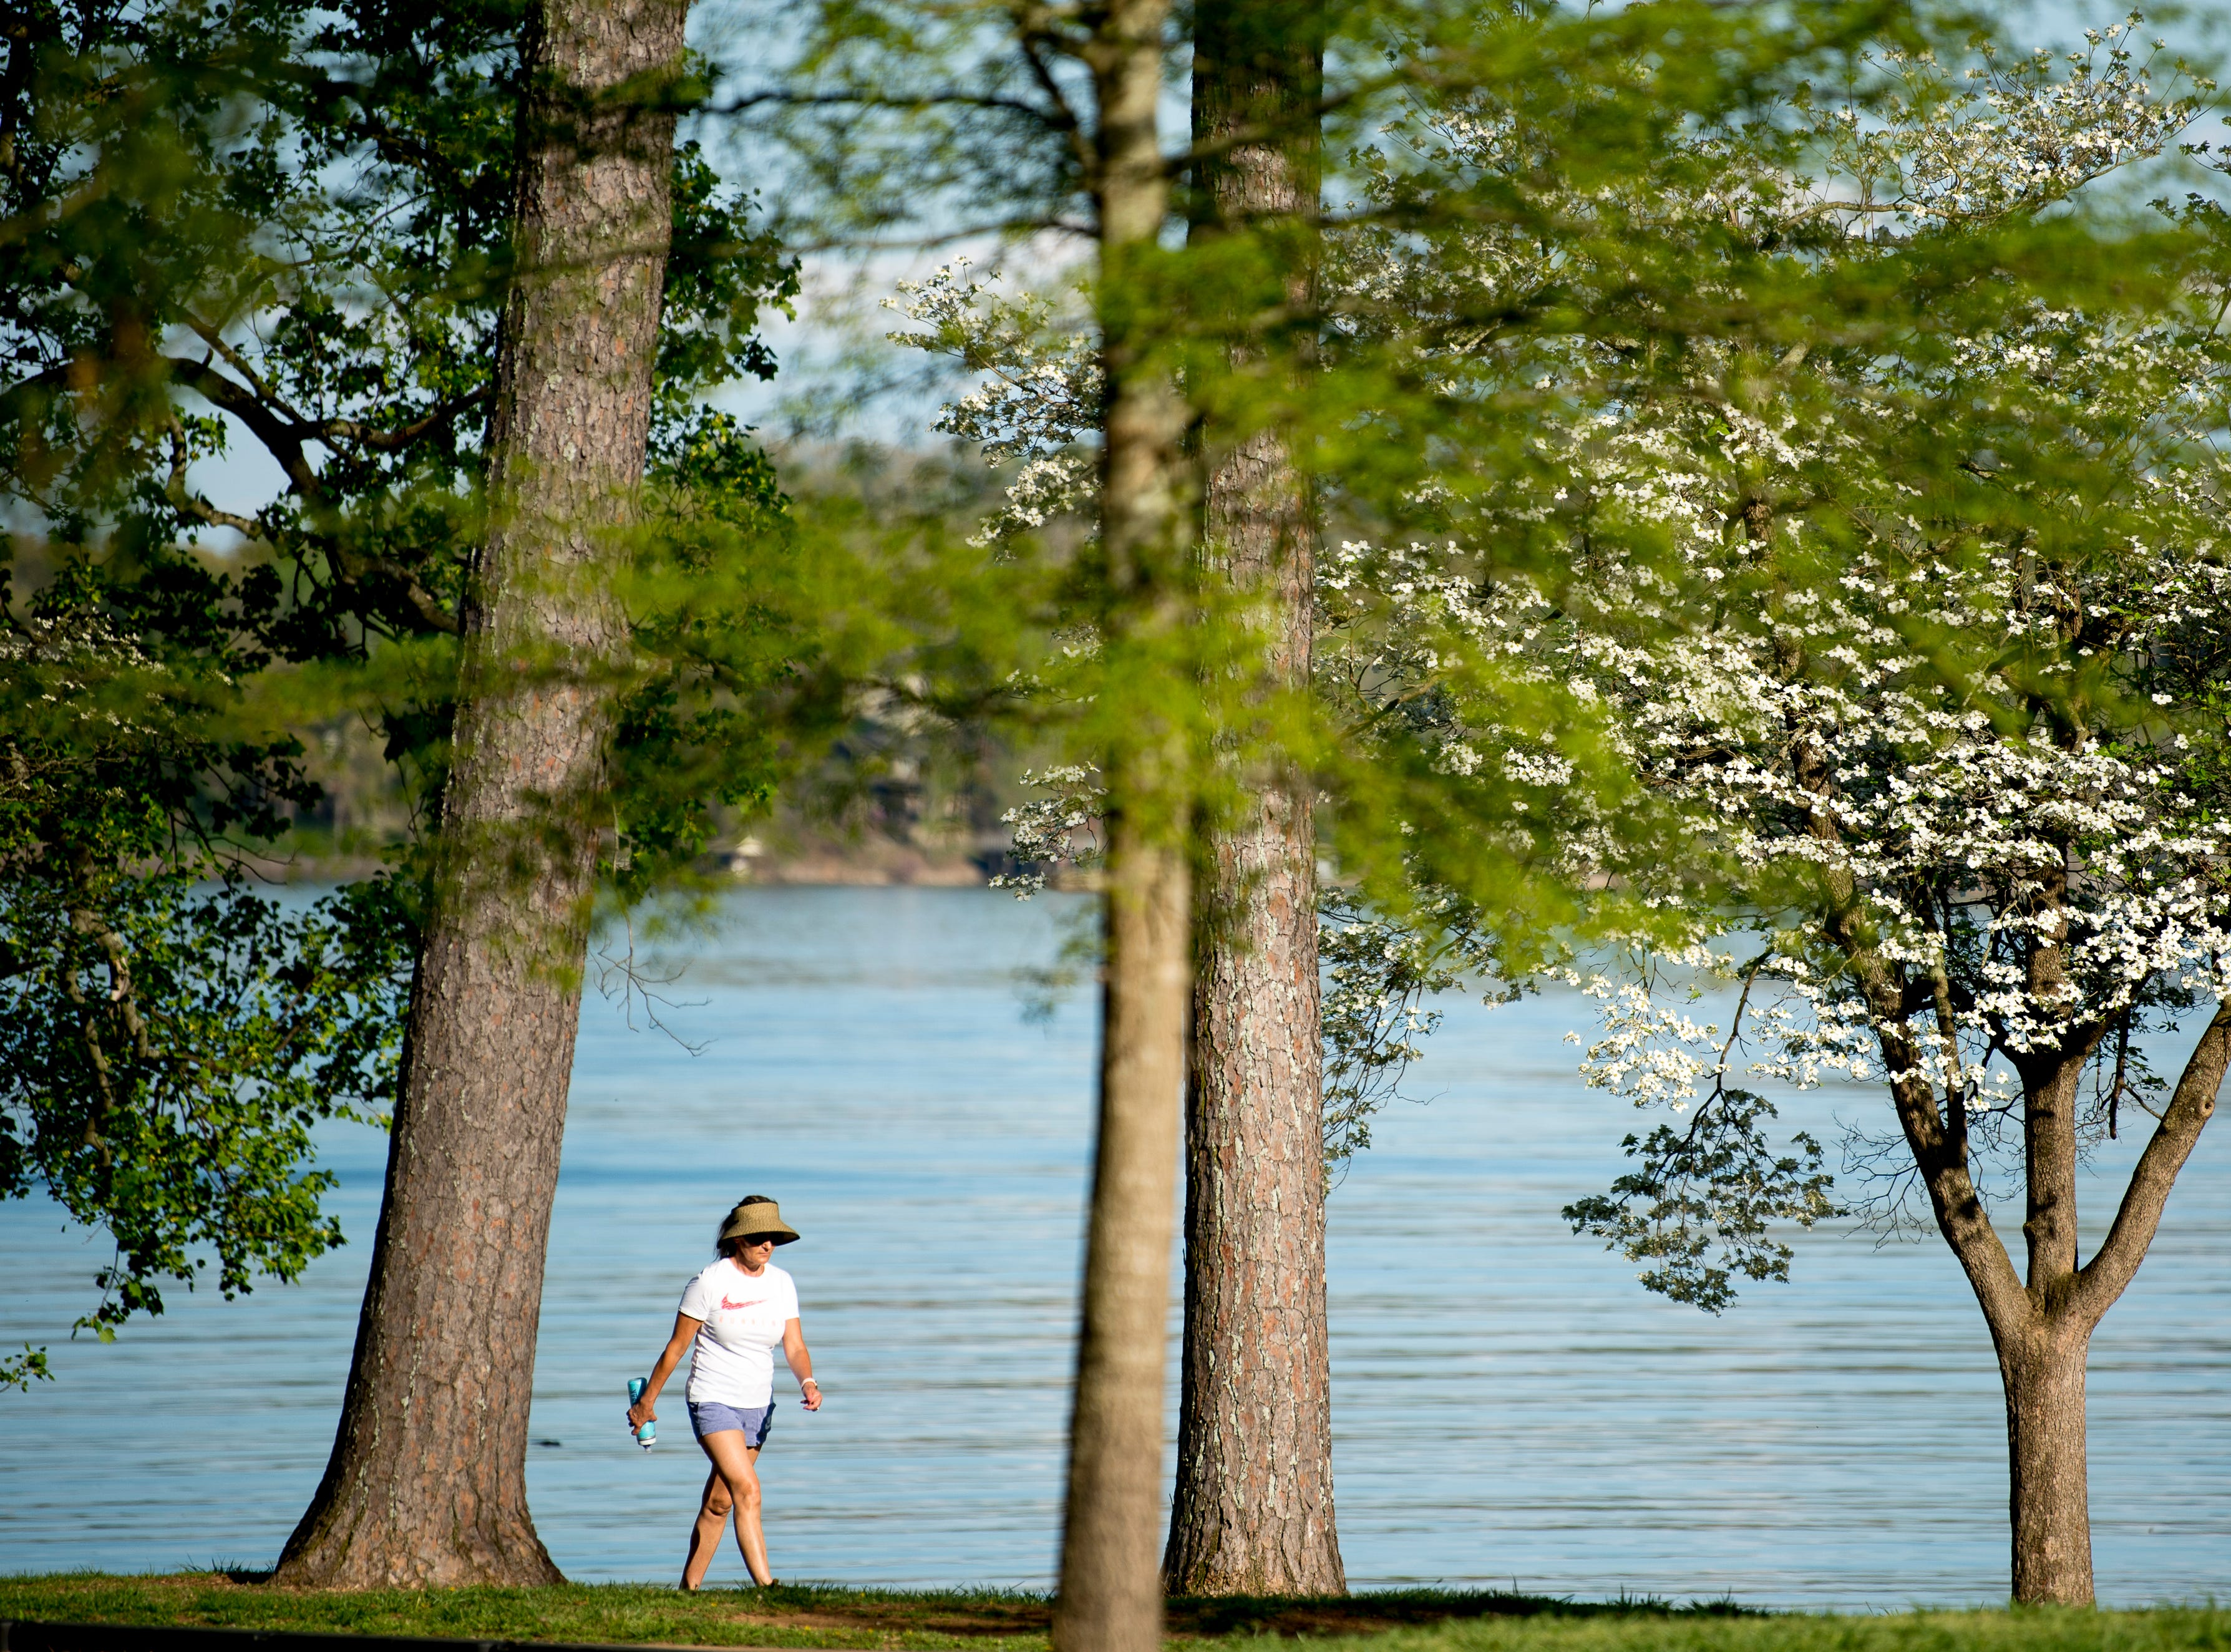 A woman walks through The Cove at Concord Park in Knoxville on Wednesday, April 10, 2019.